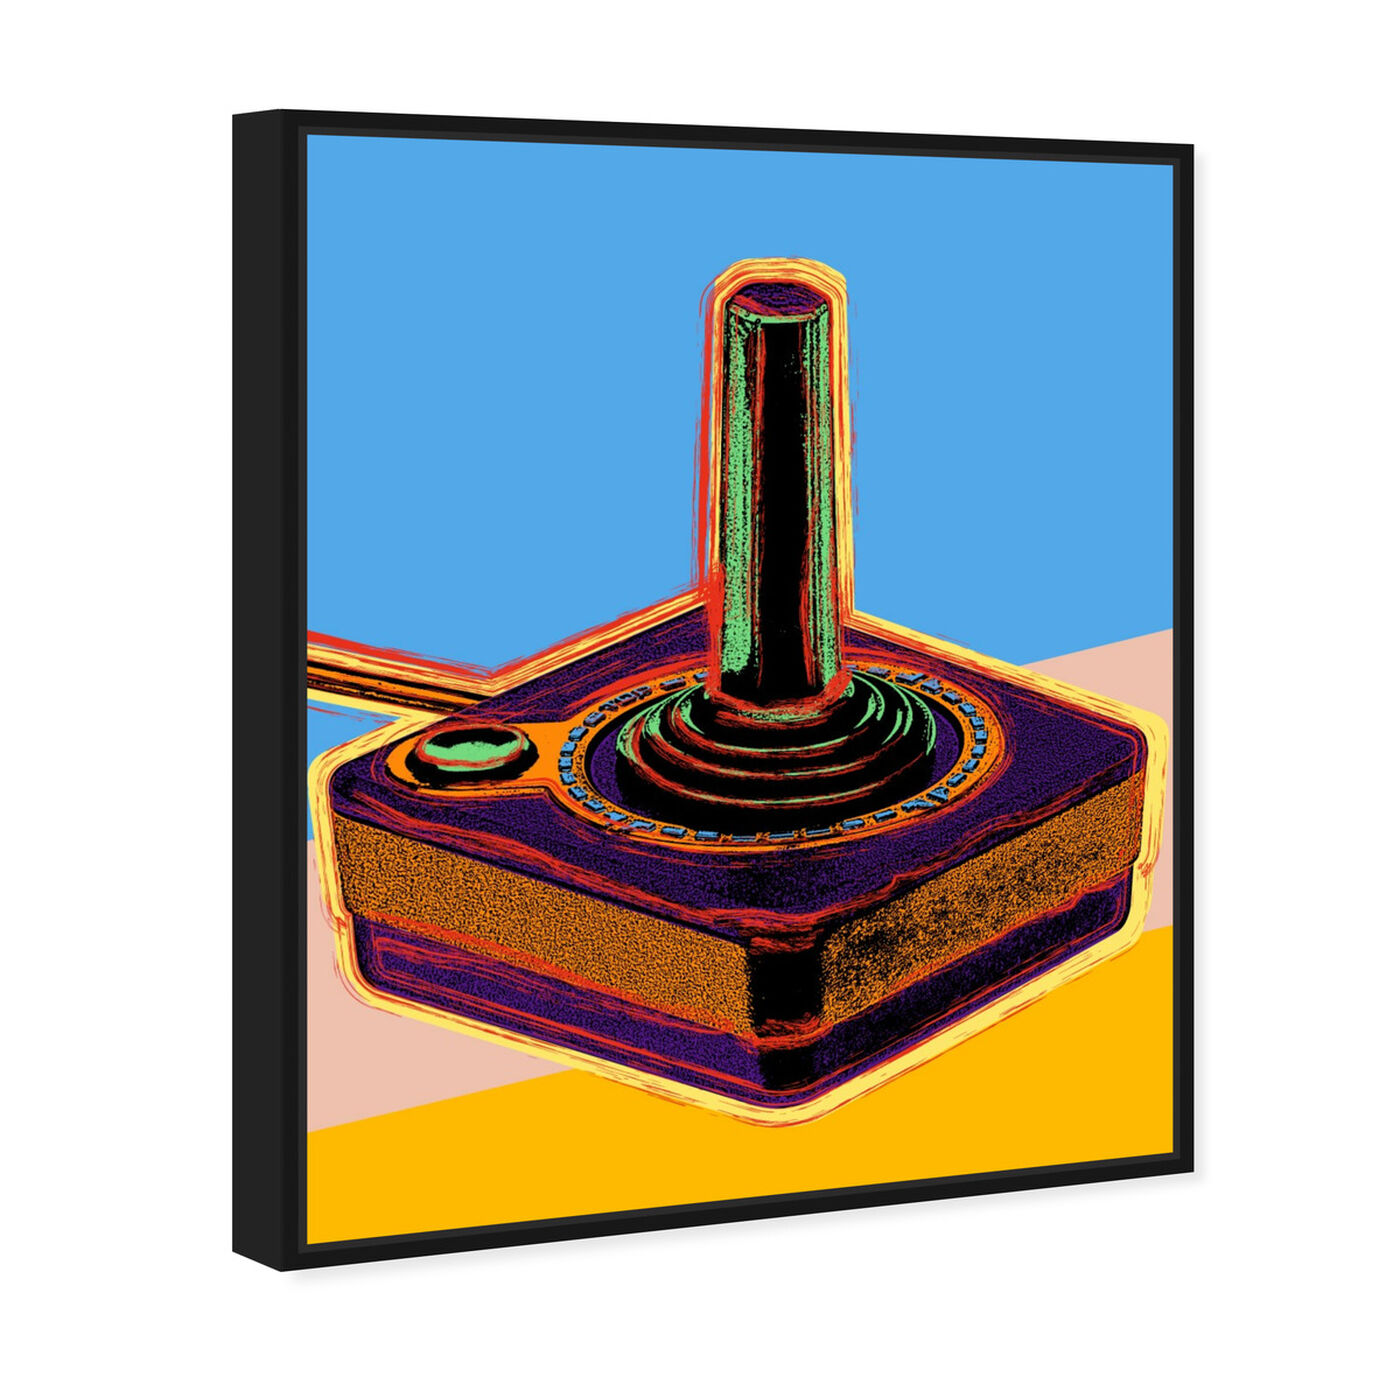 Angled view of Warhol style Joystick featuring entertainment and hobbies and video games art.